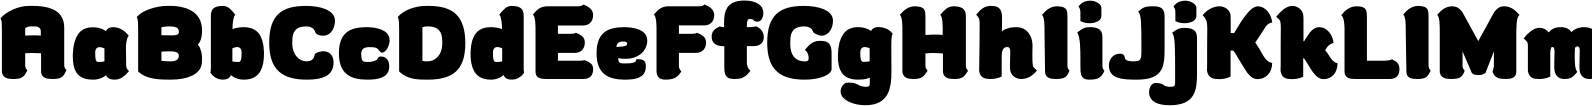 Gusto Bold Font